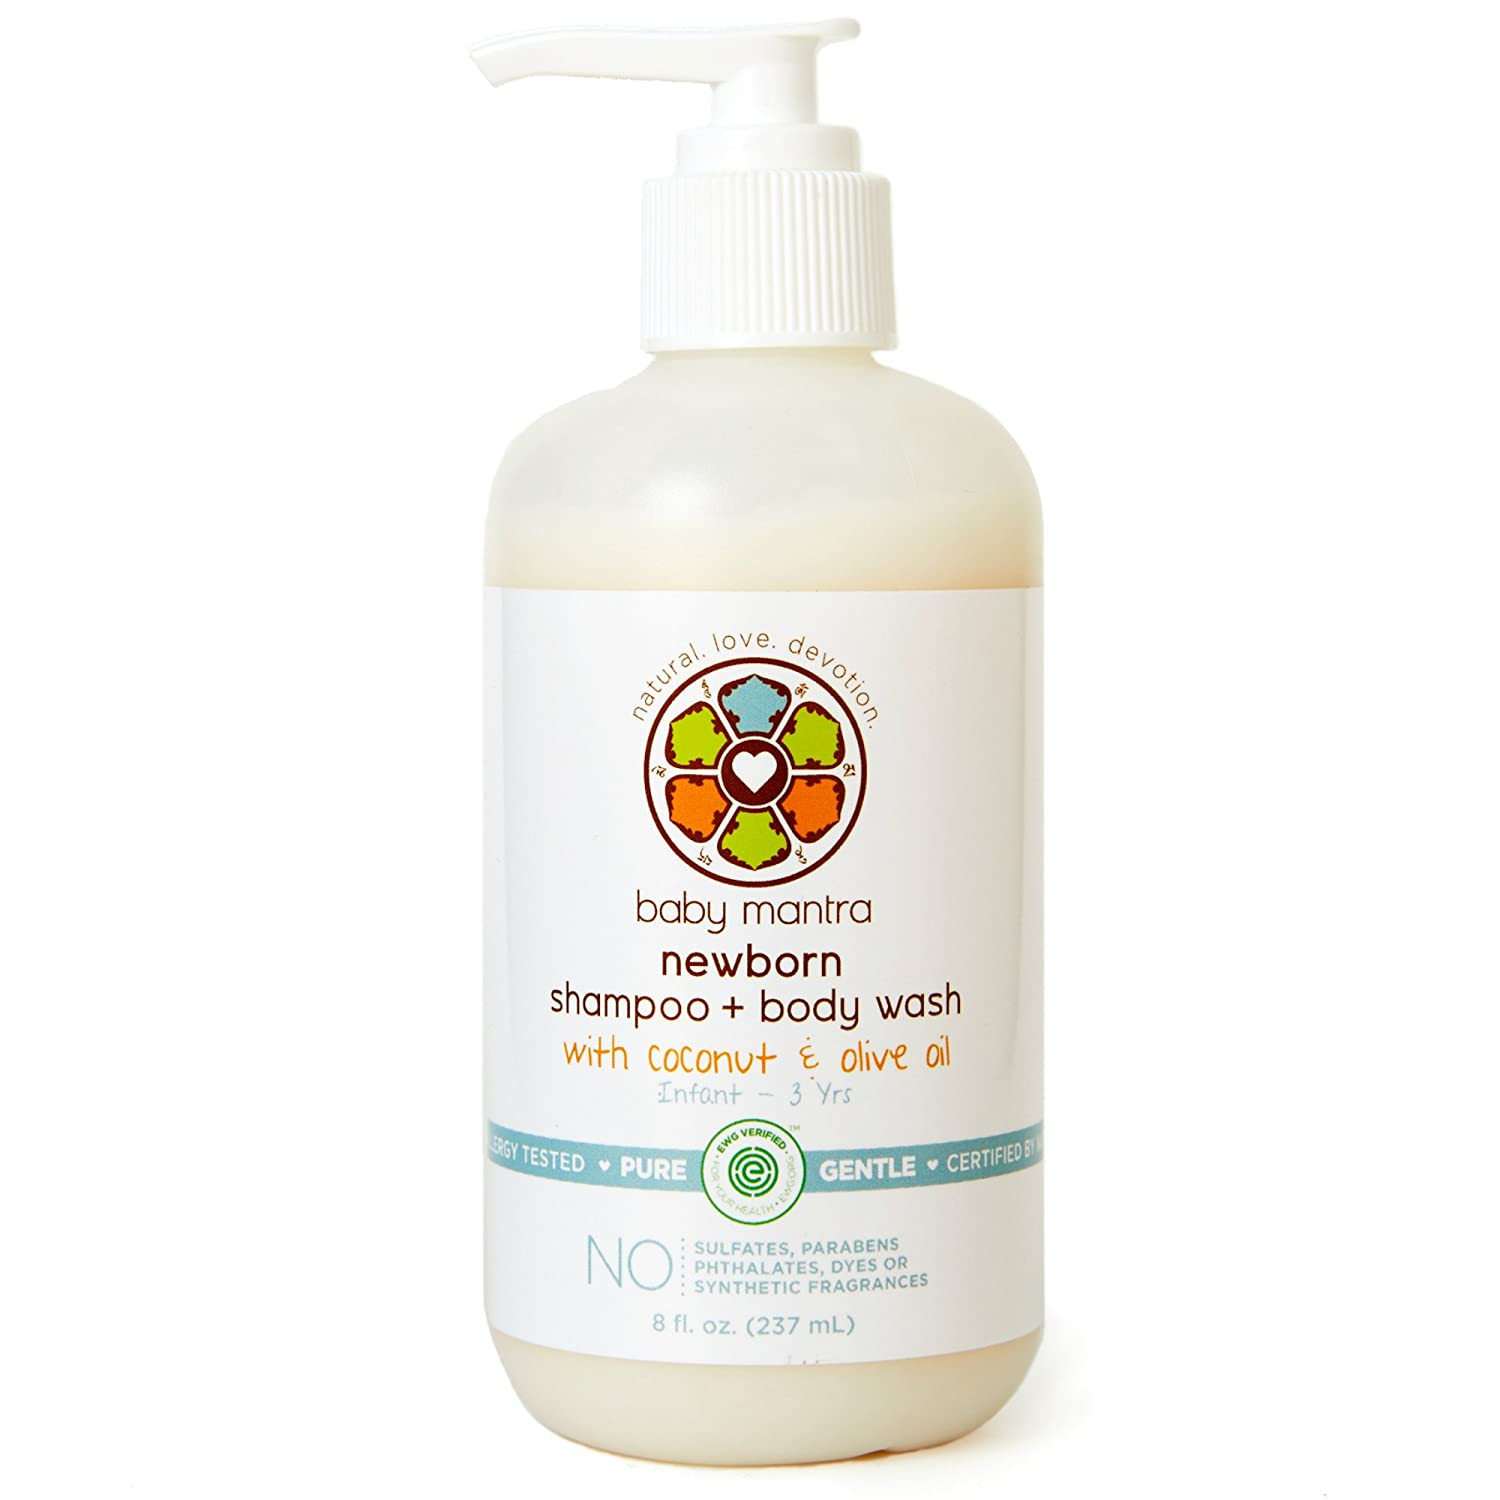 Top 13 Best Organic Baby Washes Reviews in 2019 8